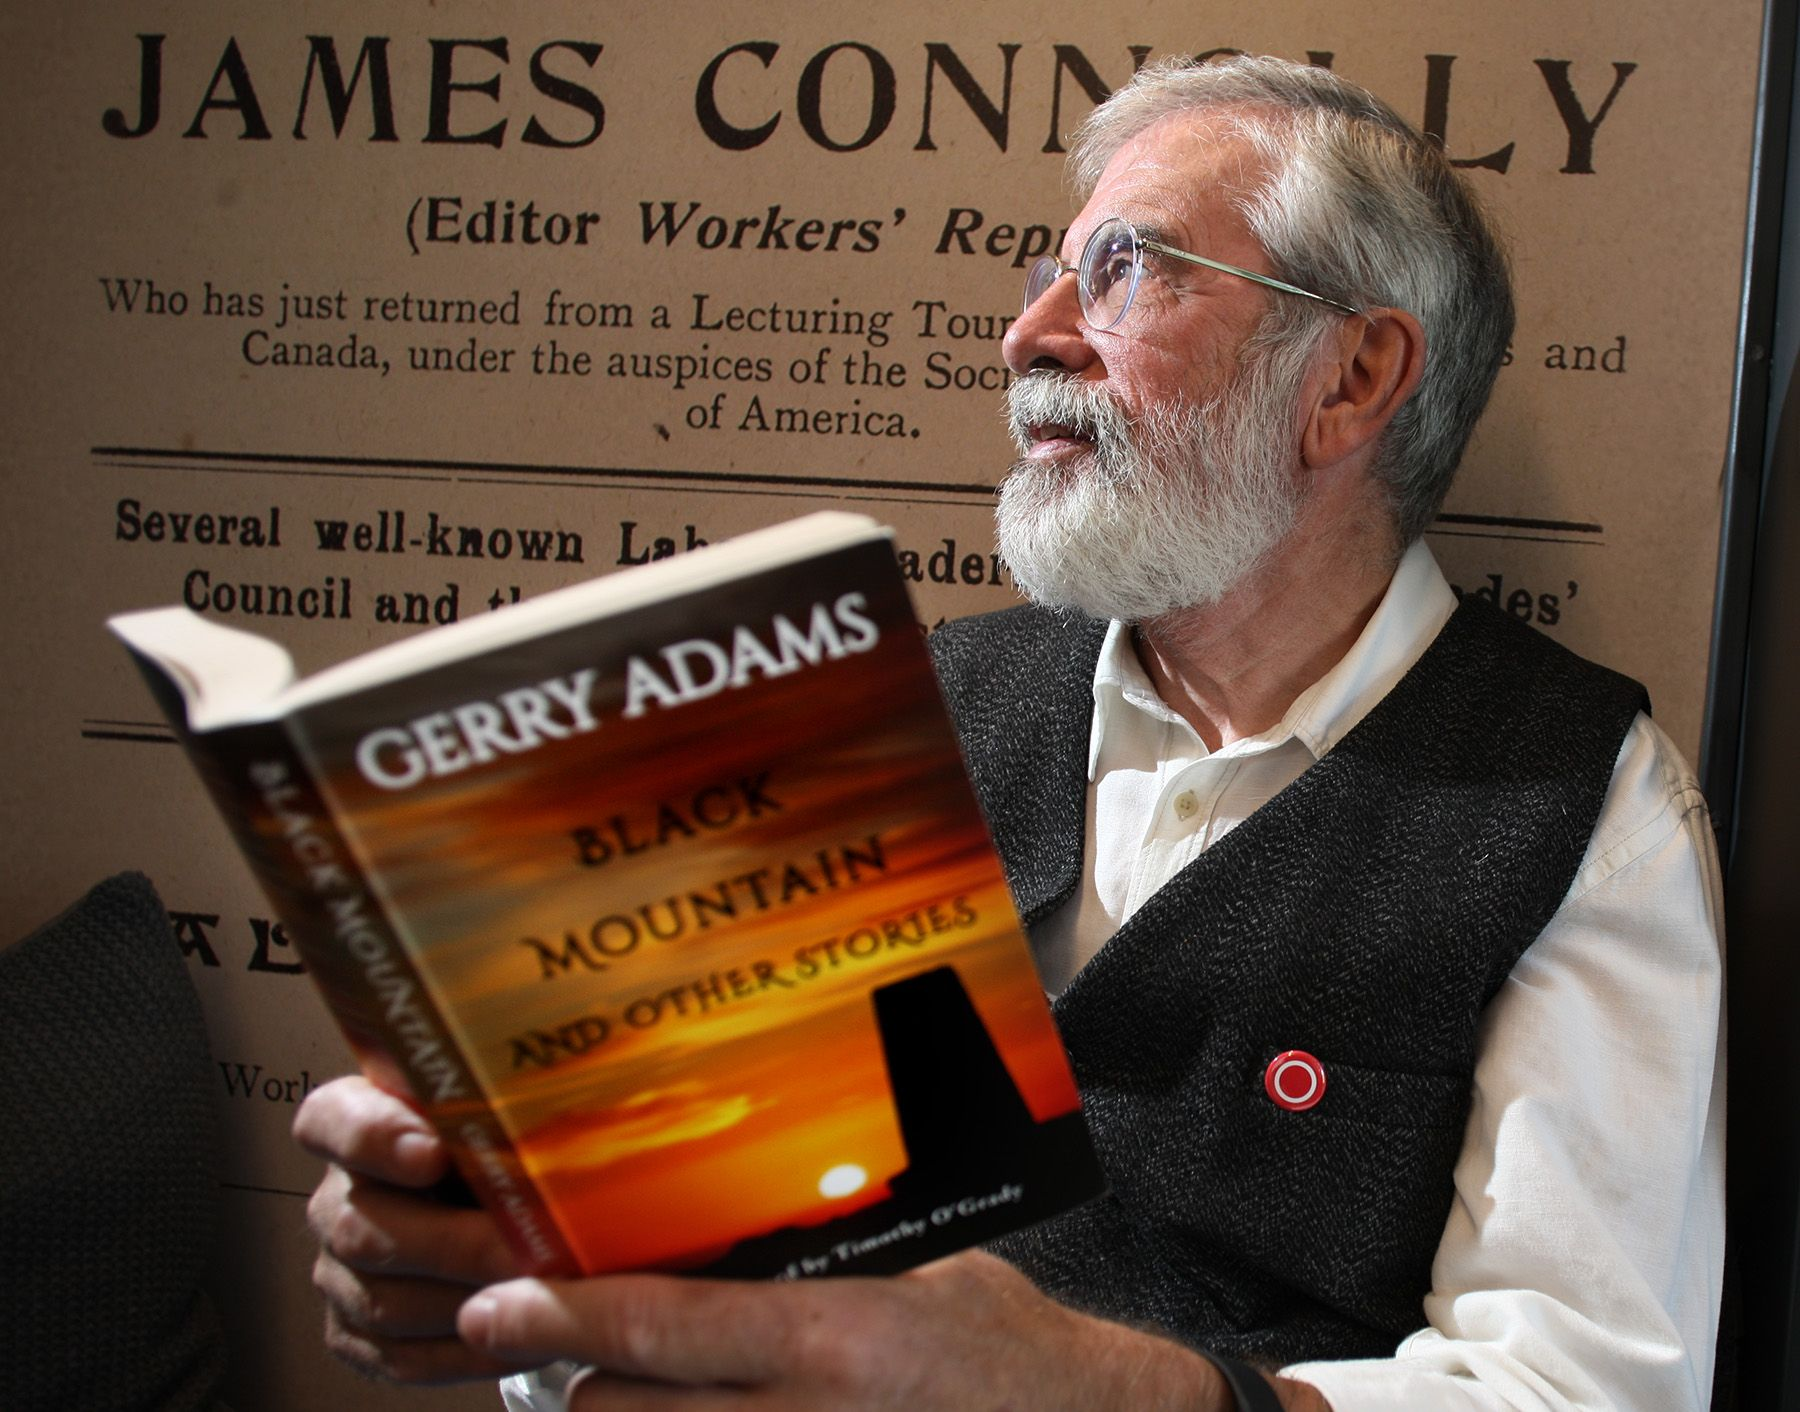 BLACK MOUNTAIN: Gerry Adams is on familiar grounds with his new collection of short stories